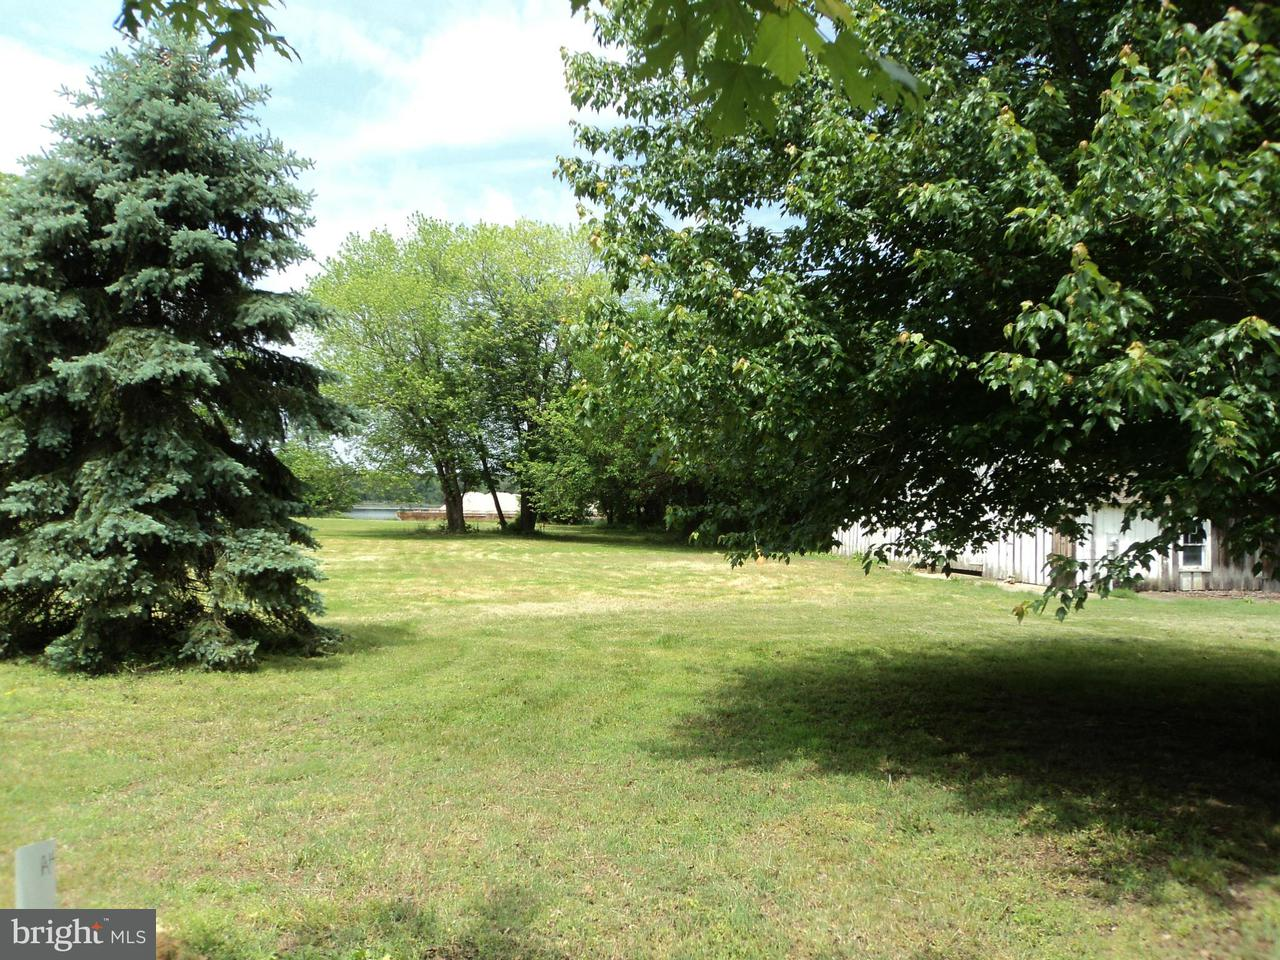 Additional photo for property listing at 27170 ENNISKILLEN Road 27170 ENNISKILLEN Road Easton, Μεριλαντ 21601 Ηνωμενεσ Πολιτειεσ